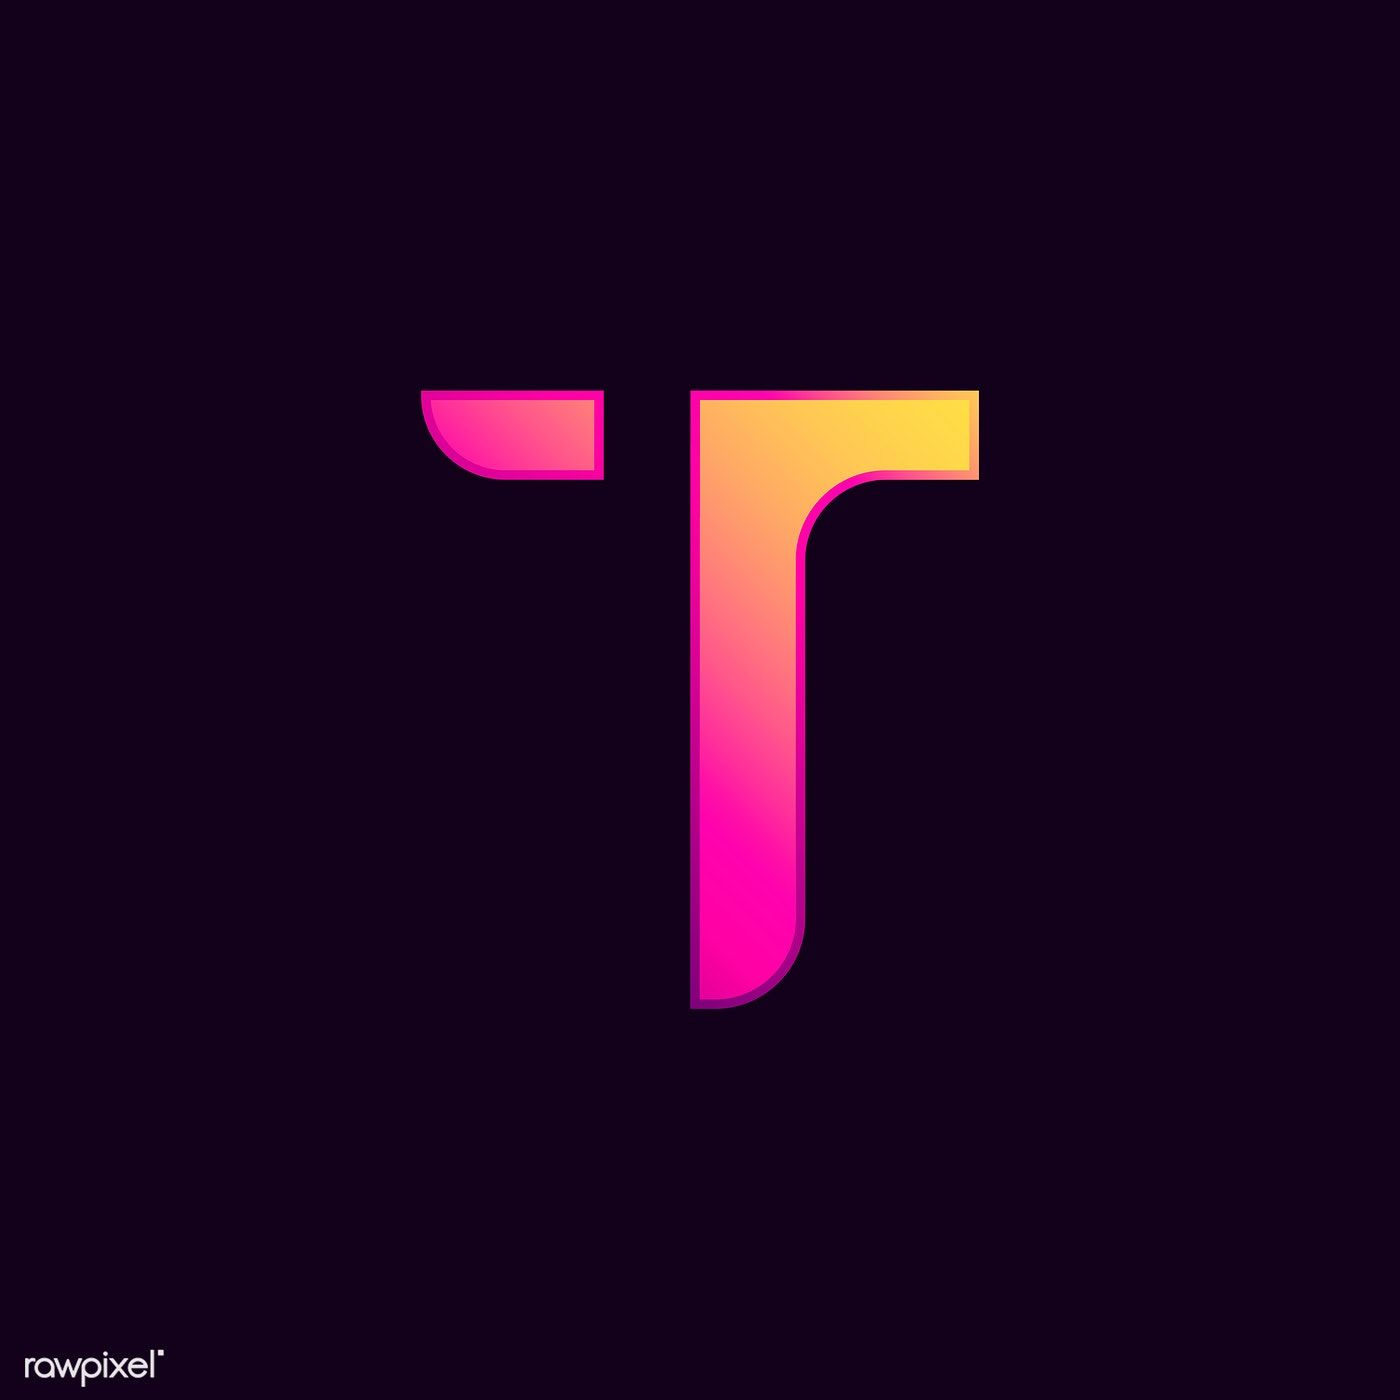 Download premium vector of Capital letter T vibrant